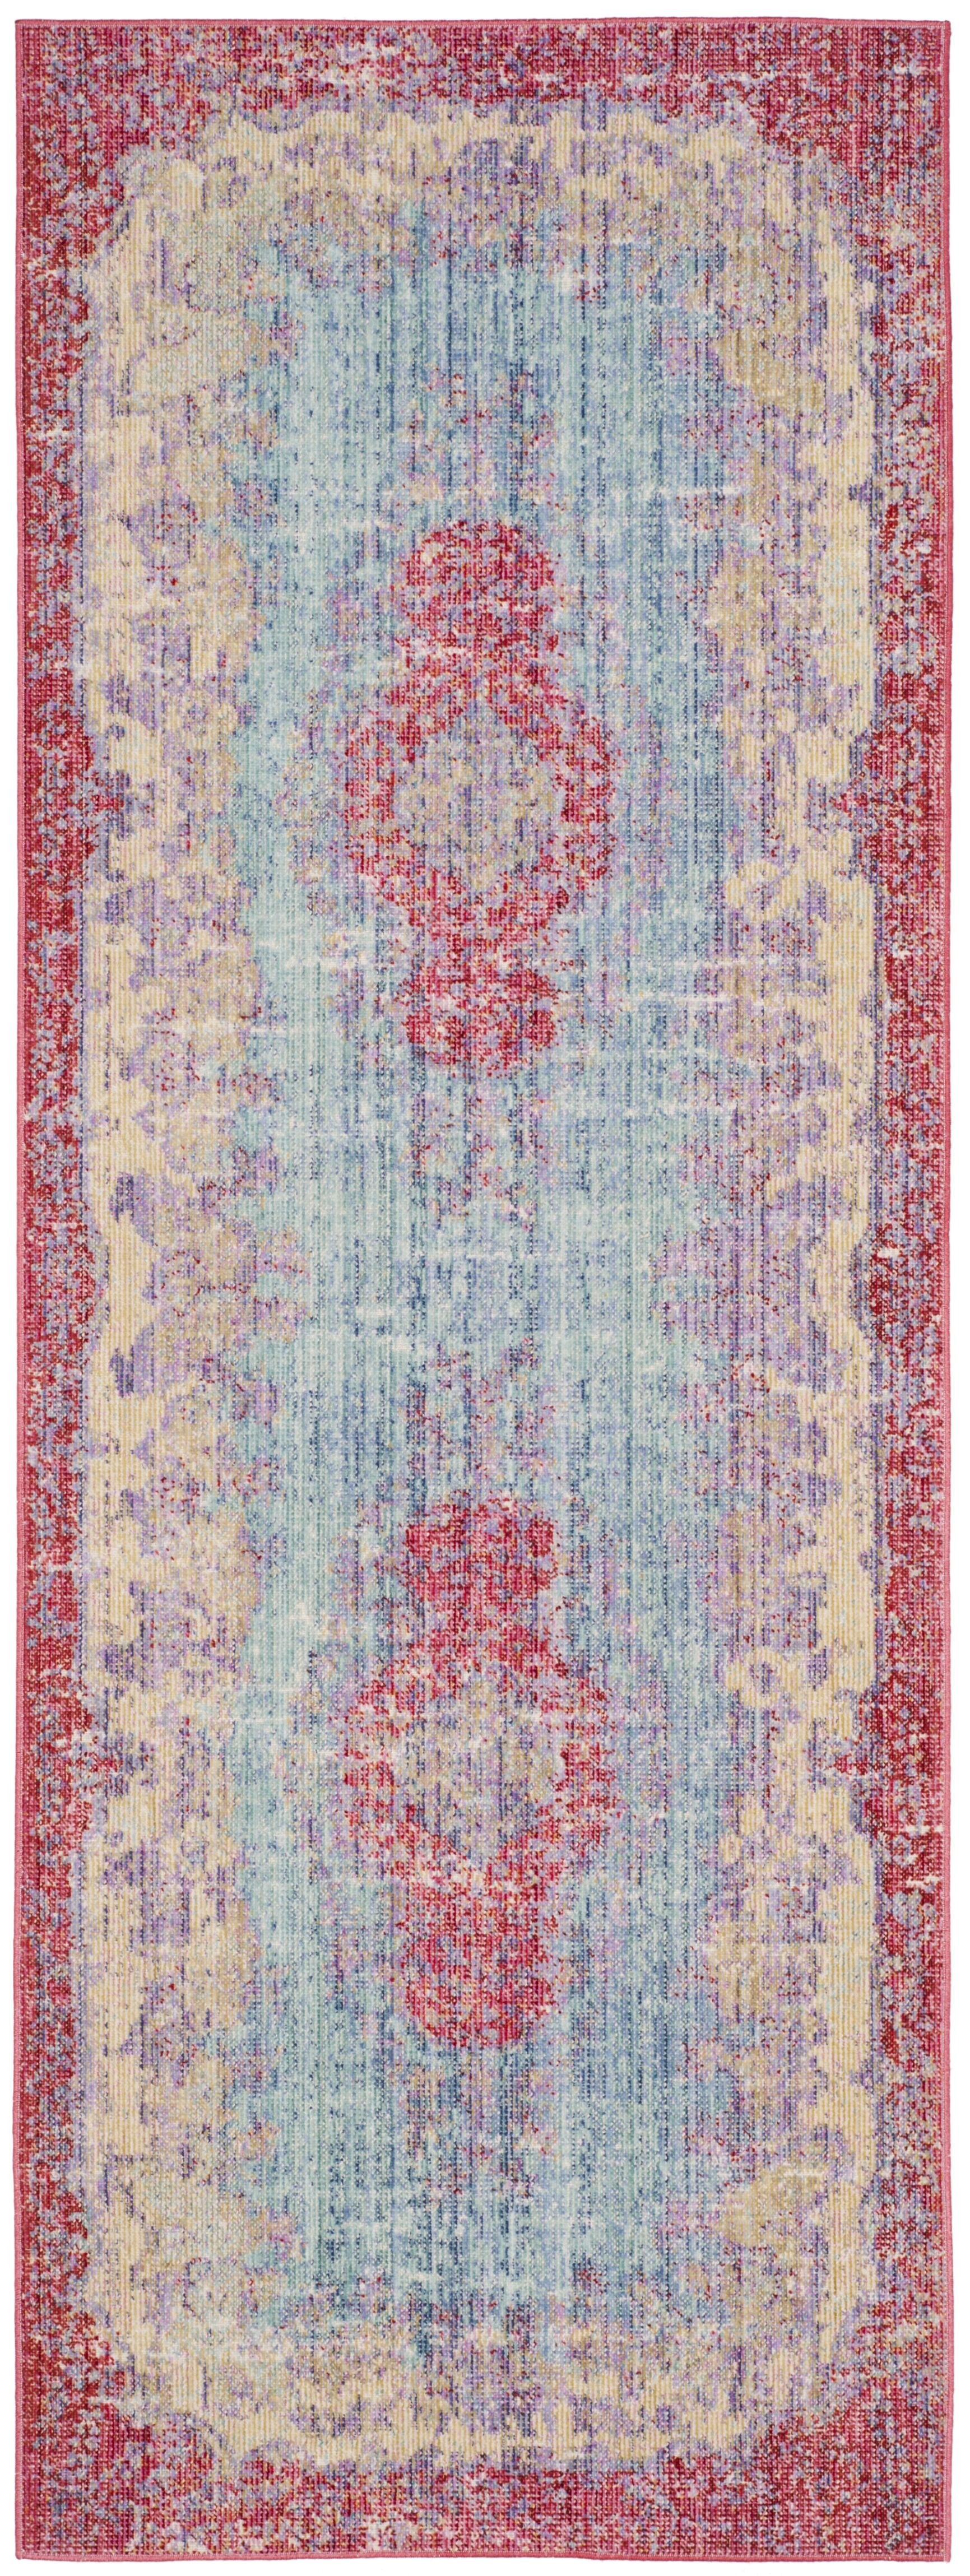 Bangou Light Blue/Fuchsia Area Rug Rug Size: Runner 3' x 10'